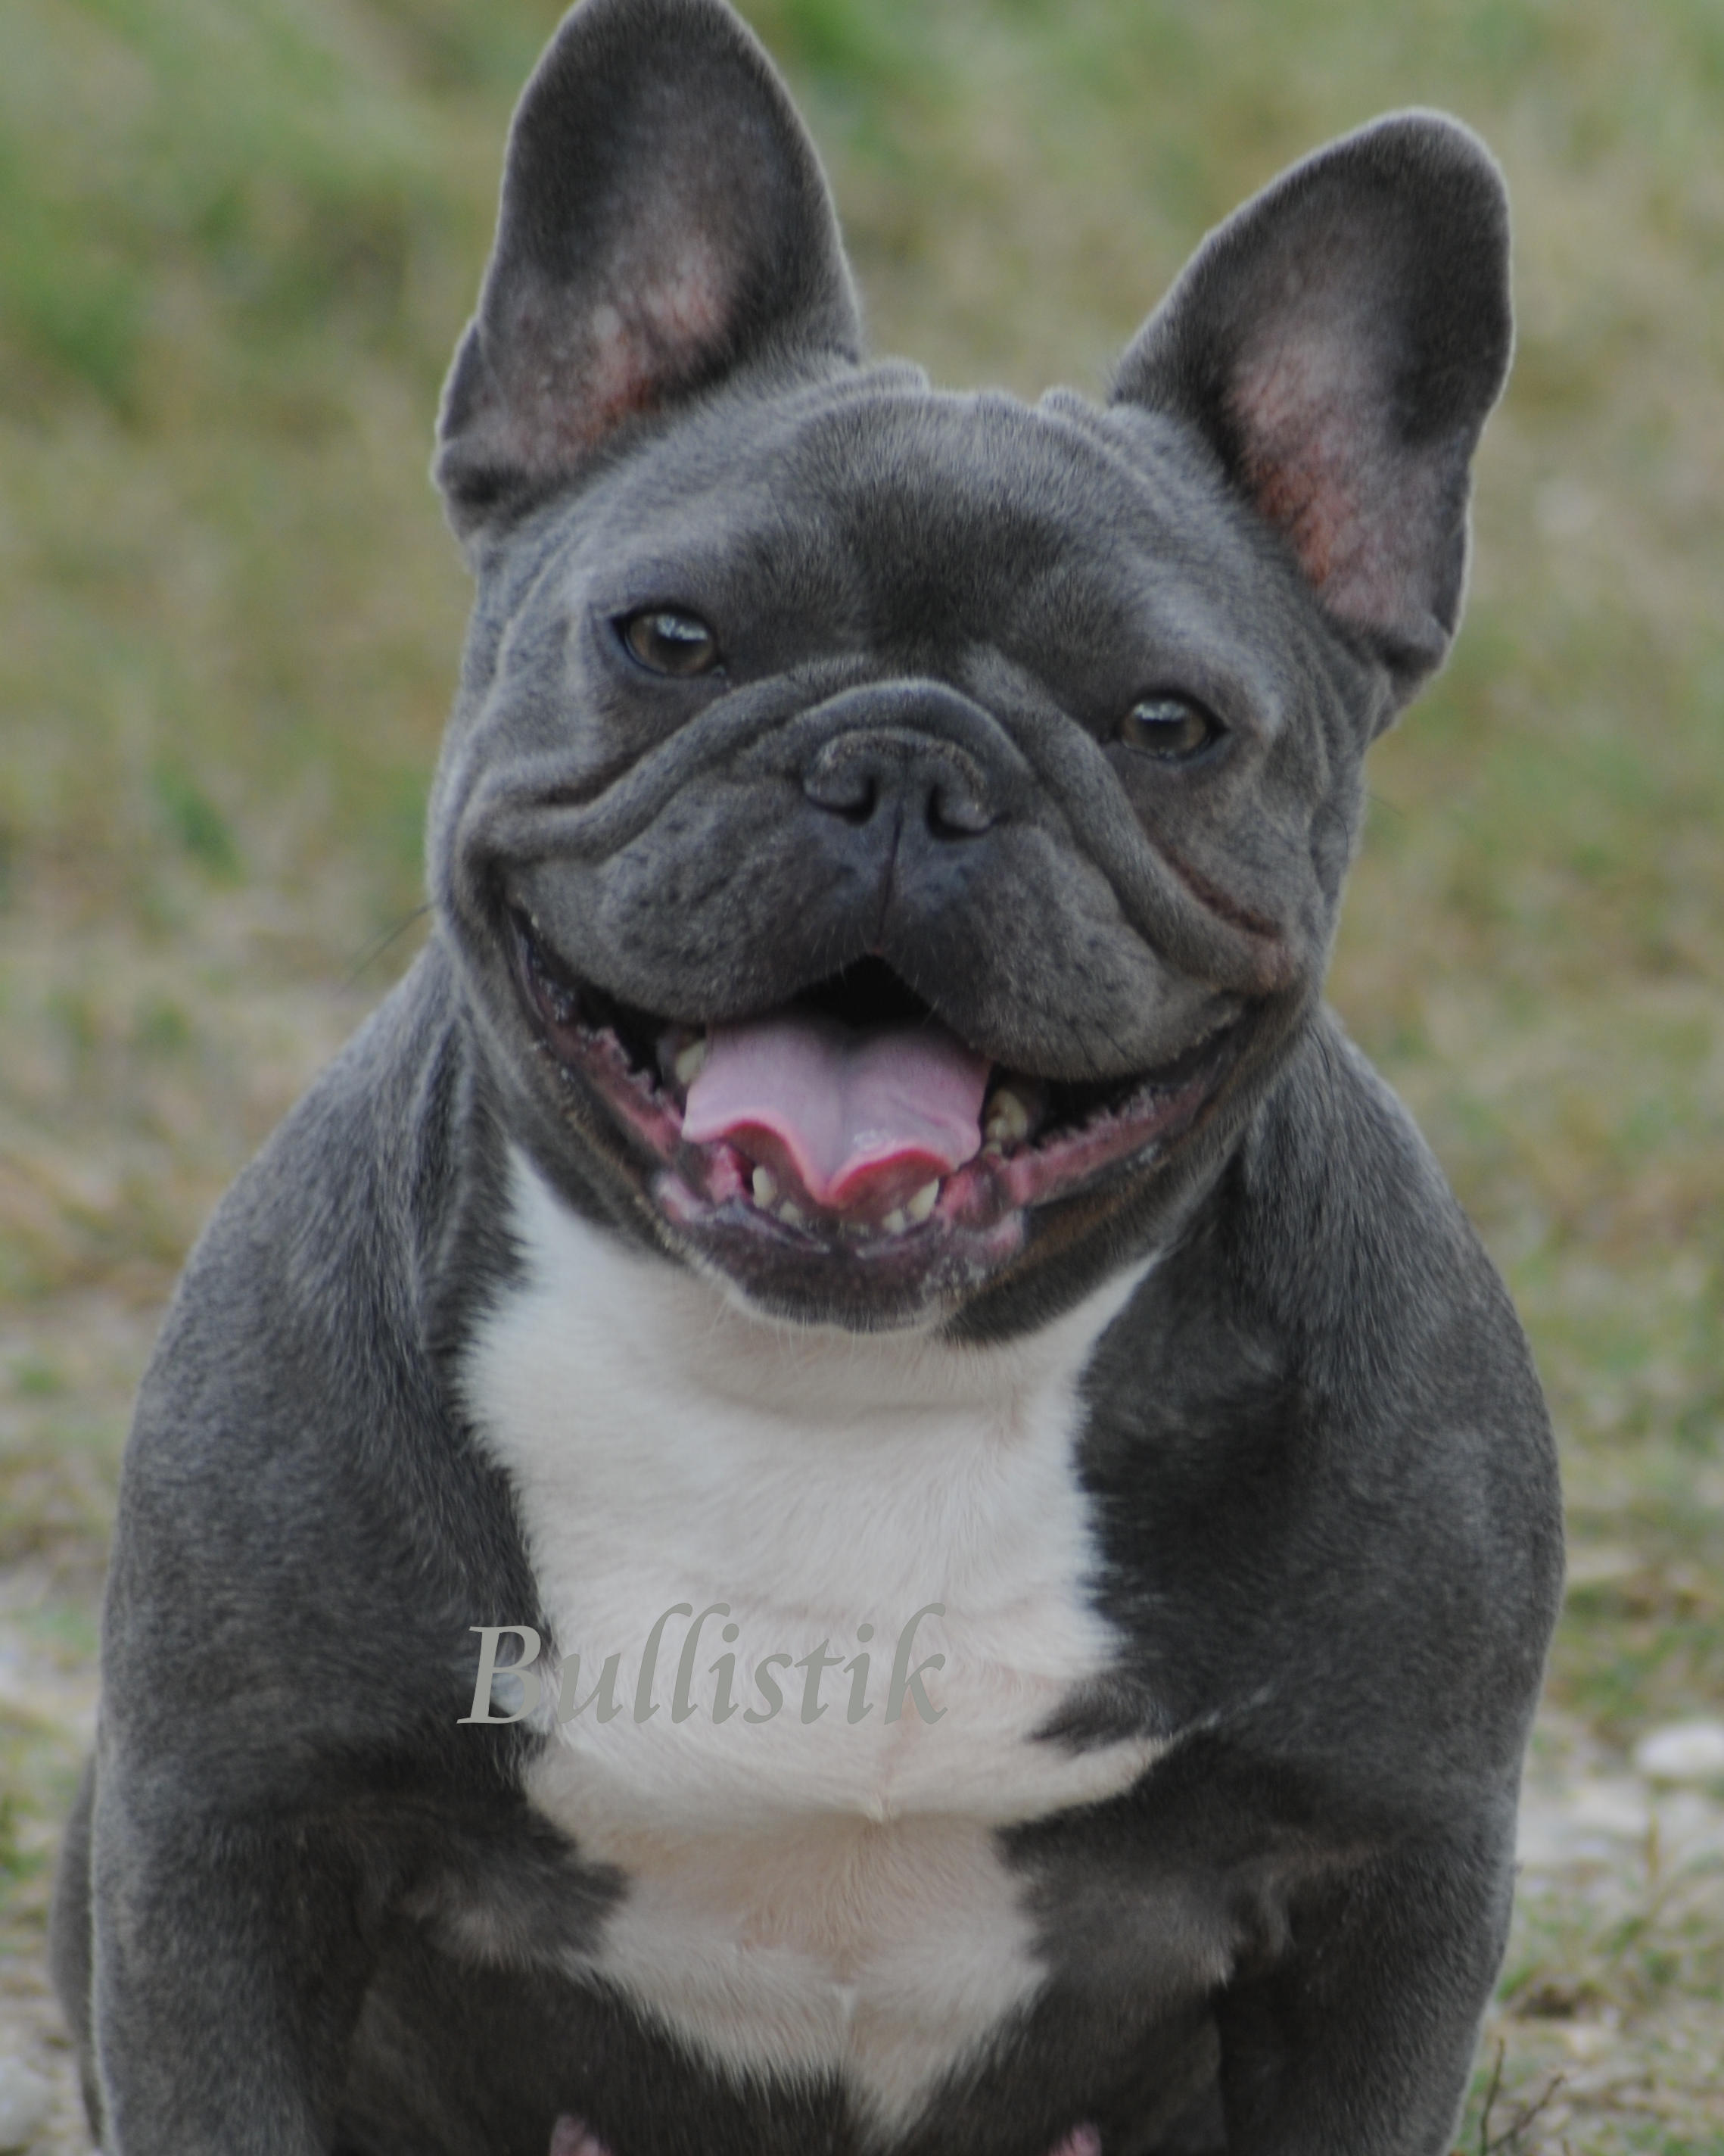 Black & Tan French Bulldogs – Blue French Bulldogs by Bullistik